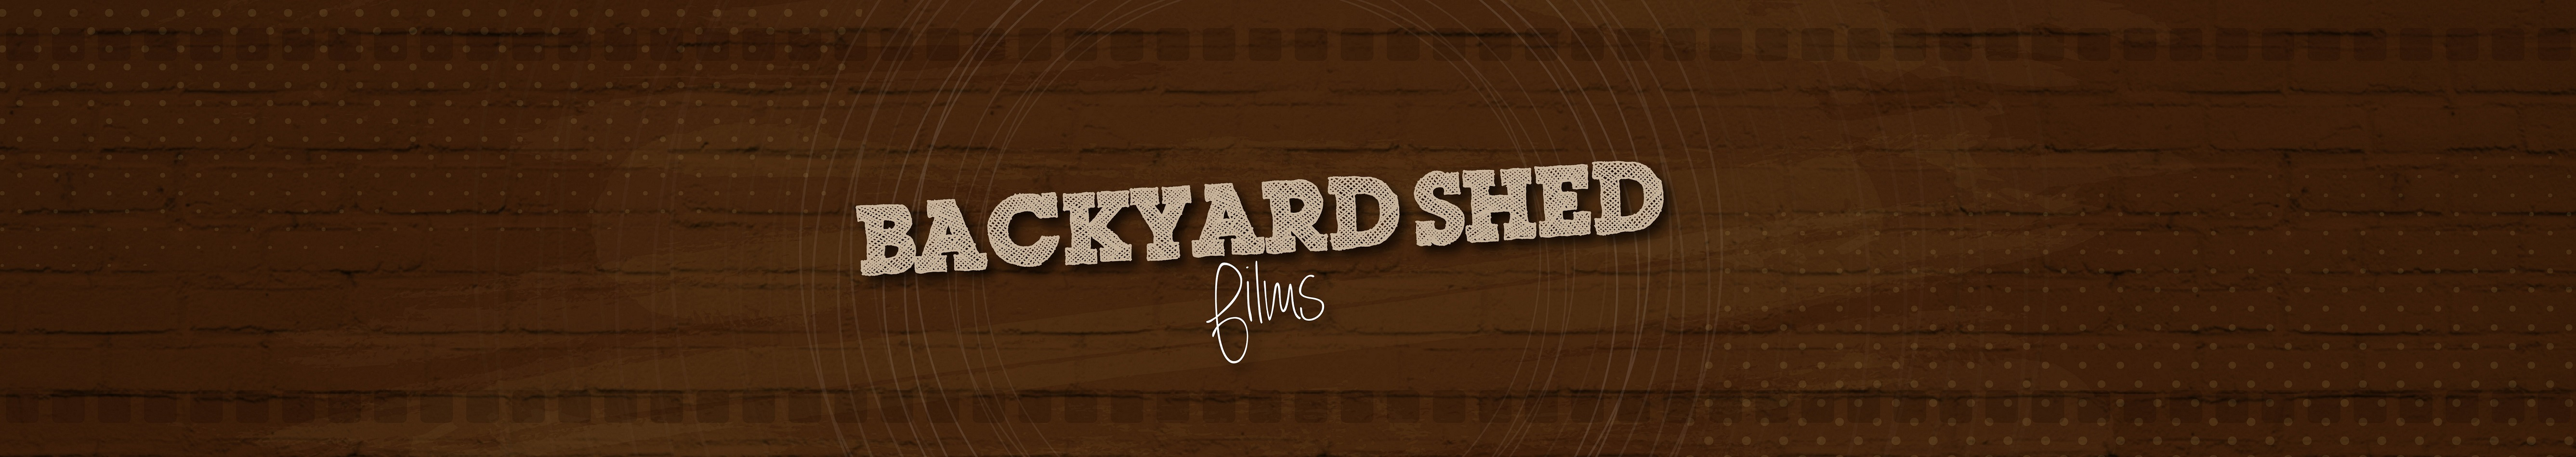 Carousel Slider 2 | Backyard Shed Films